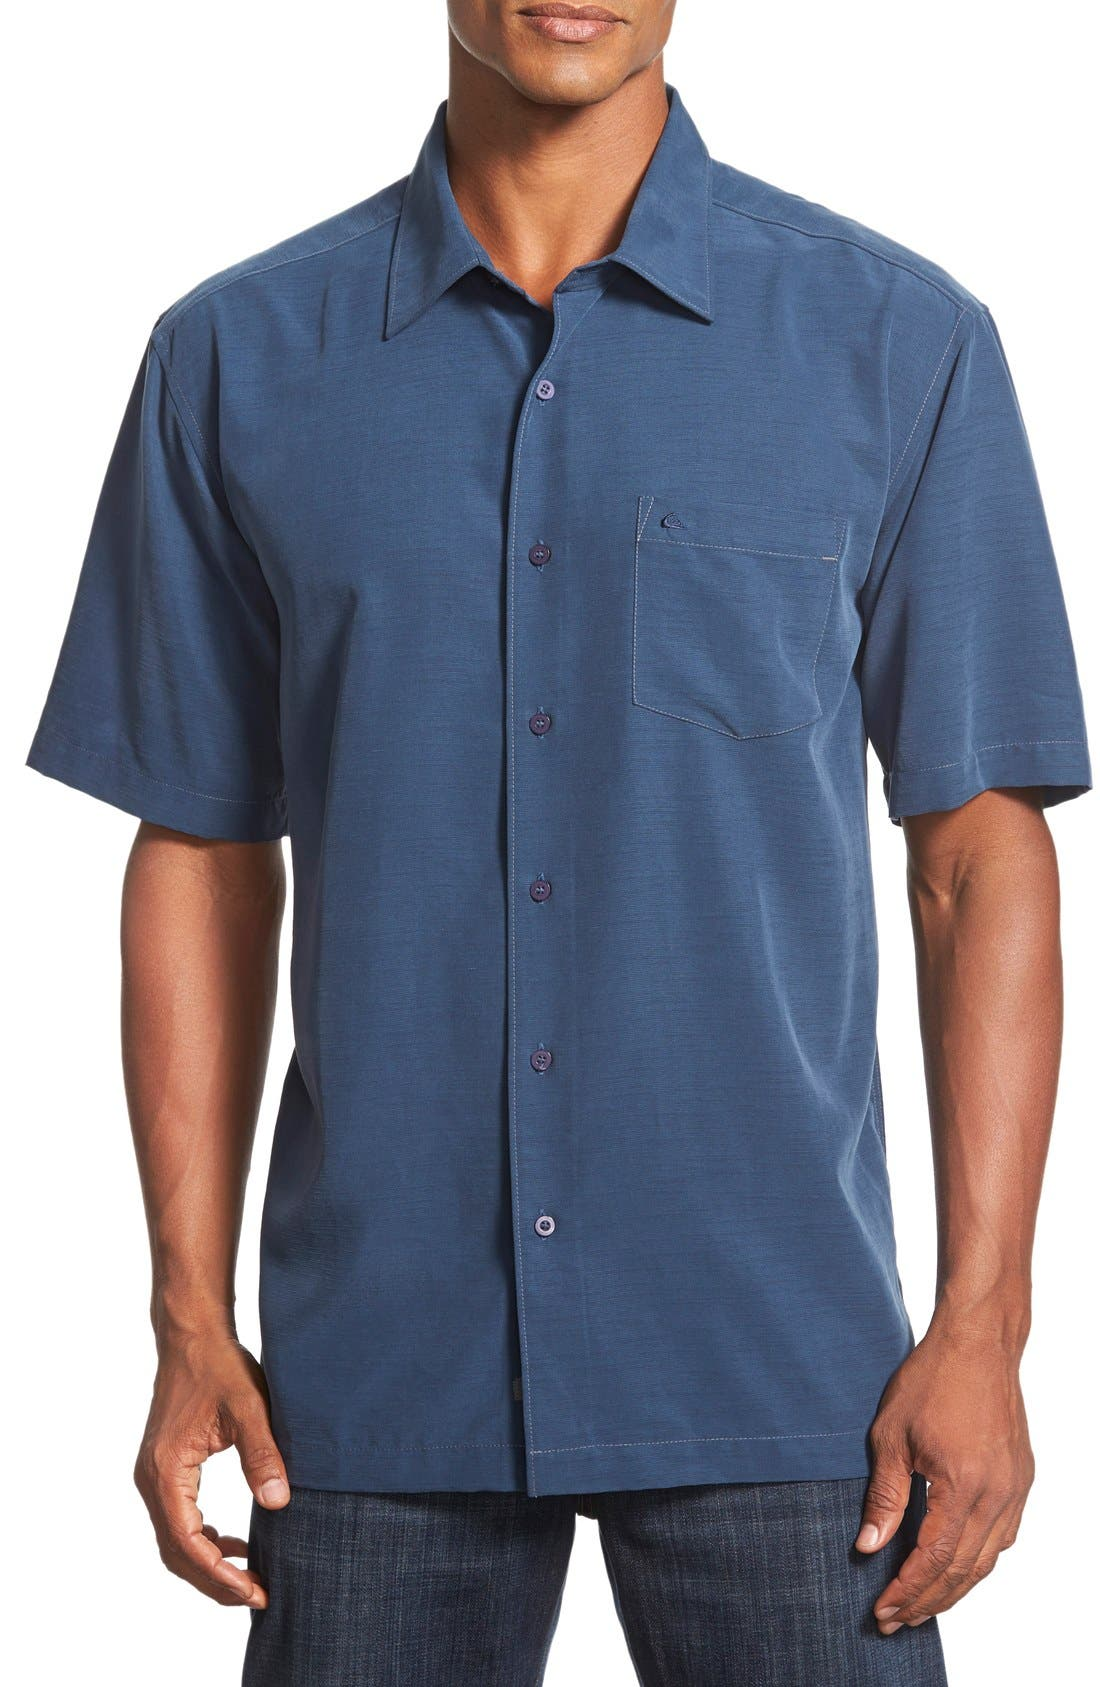 Quiksilver Waterman Collection 'Clear Days' Regular Fit Short Sleeve Sport Shirt